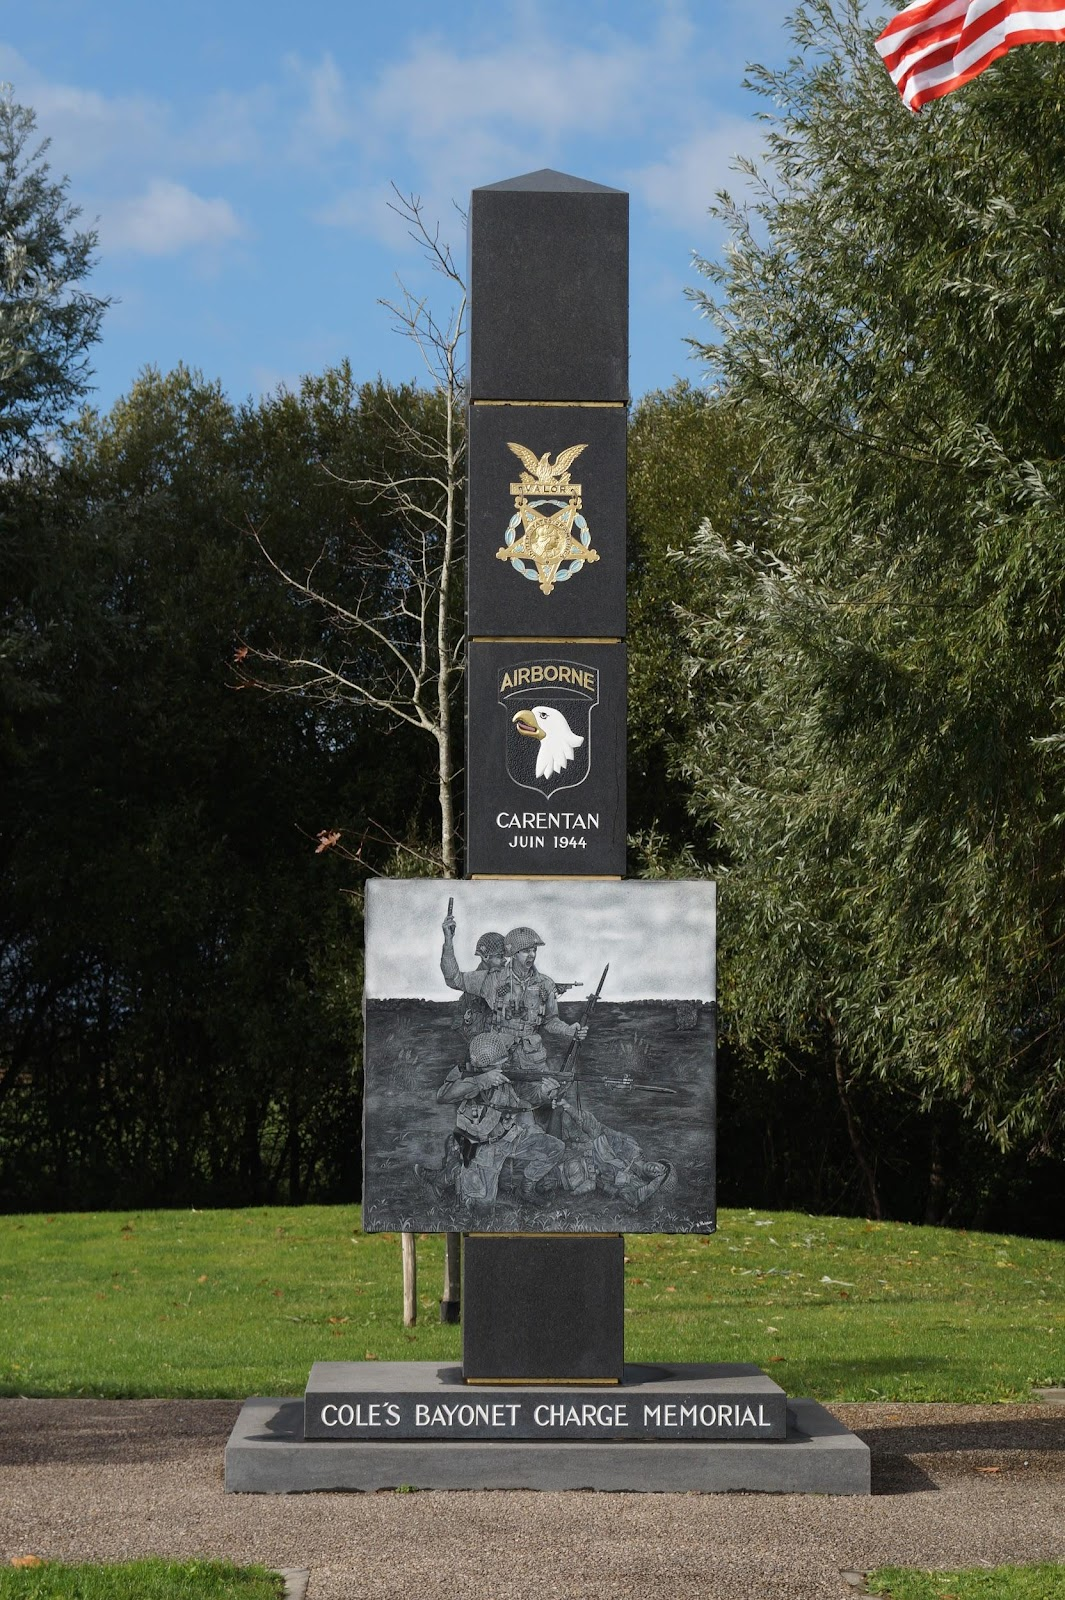 Lieutenant Colonel Cole's bayonet charge monument